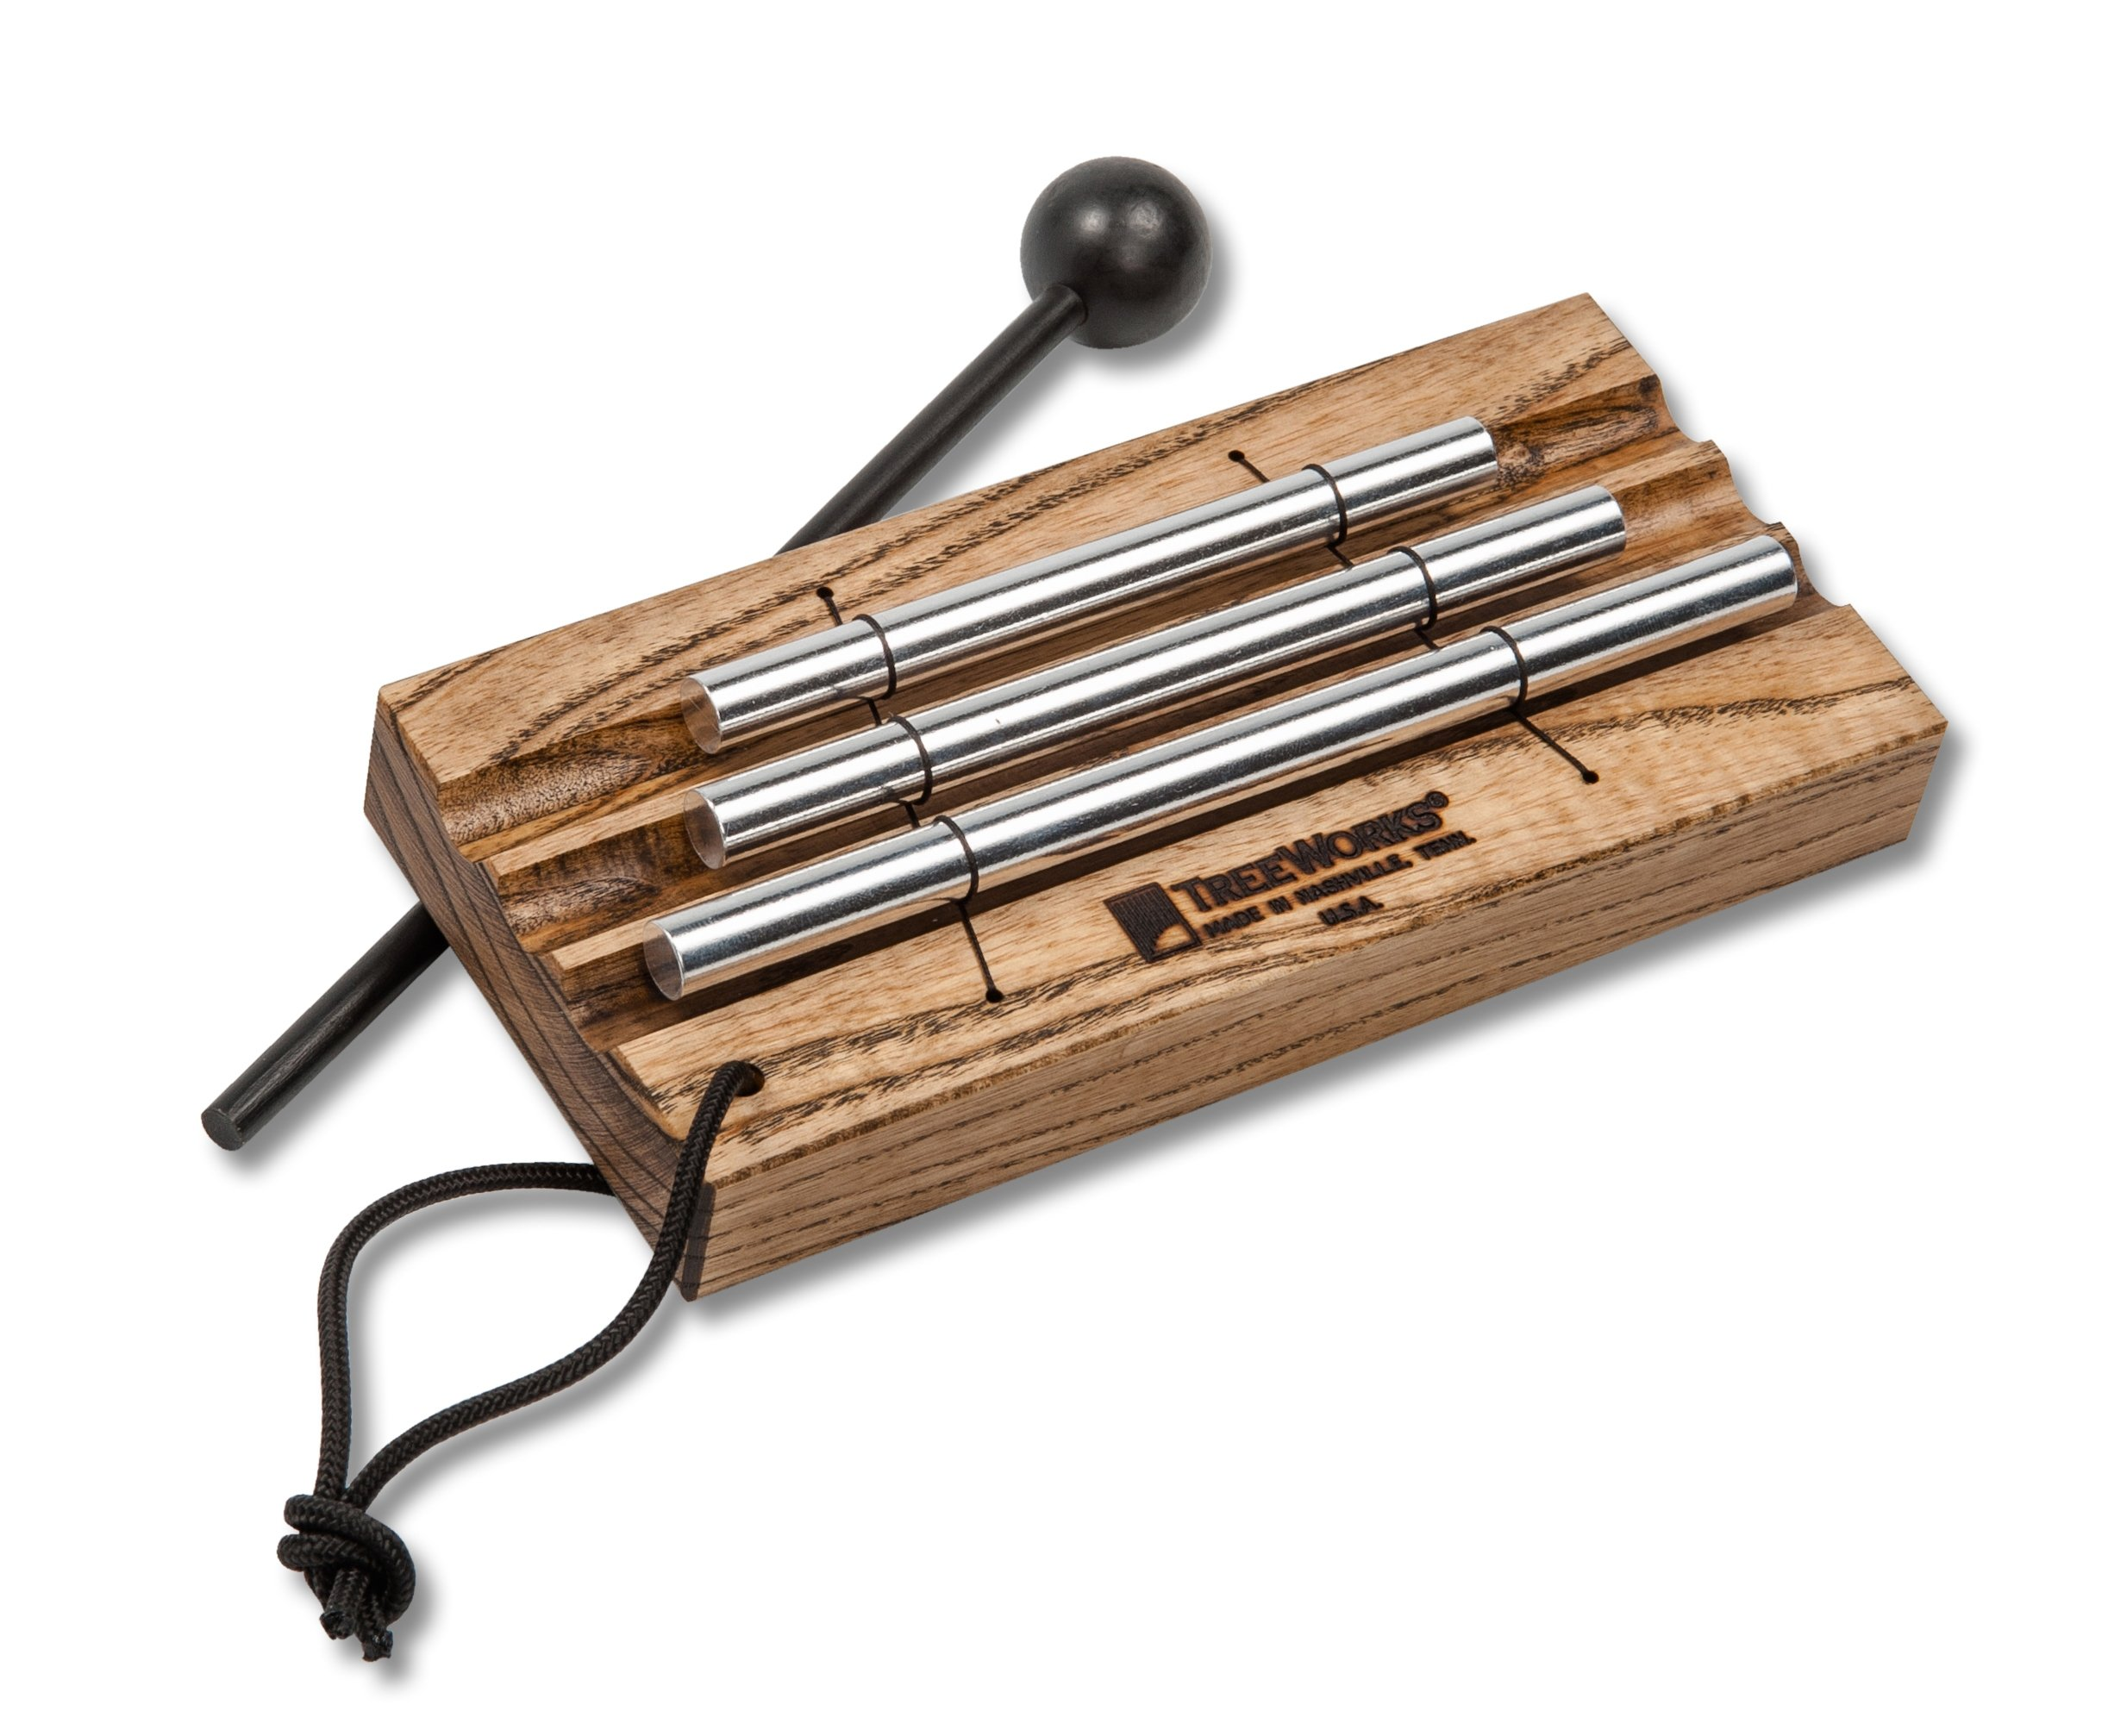 TreeWorks Chimes ((MADE IN U.S.A.) Three Tone Energy Chime for Meditation and Classroom Use includes Mallet and Cord Handle (VIDEO) (TRE420) by TreeWorks Chimes